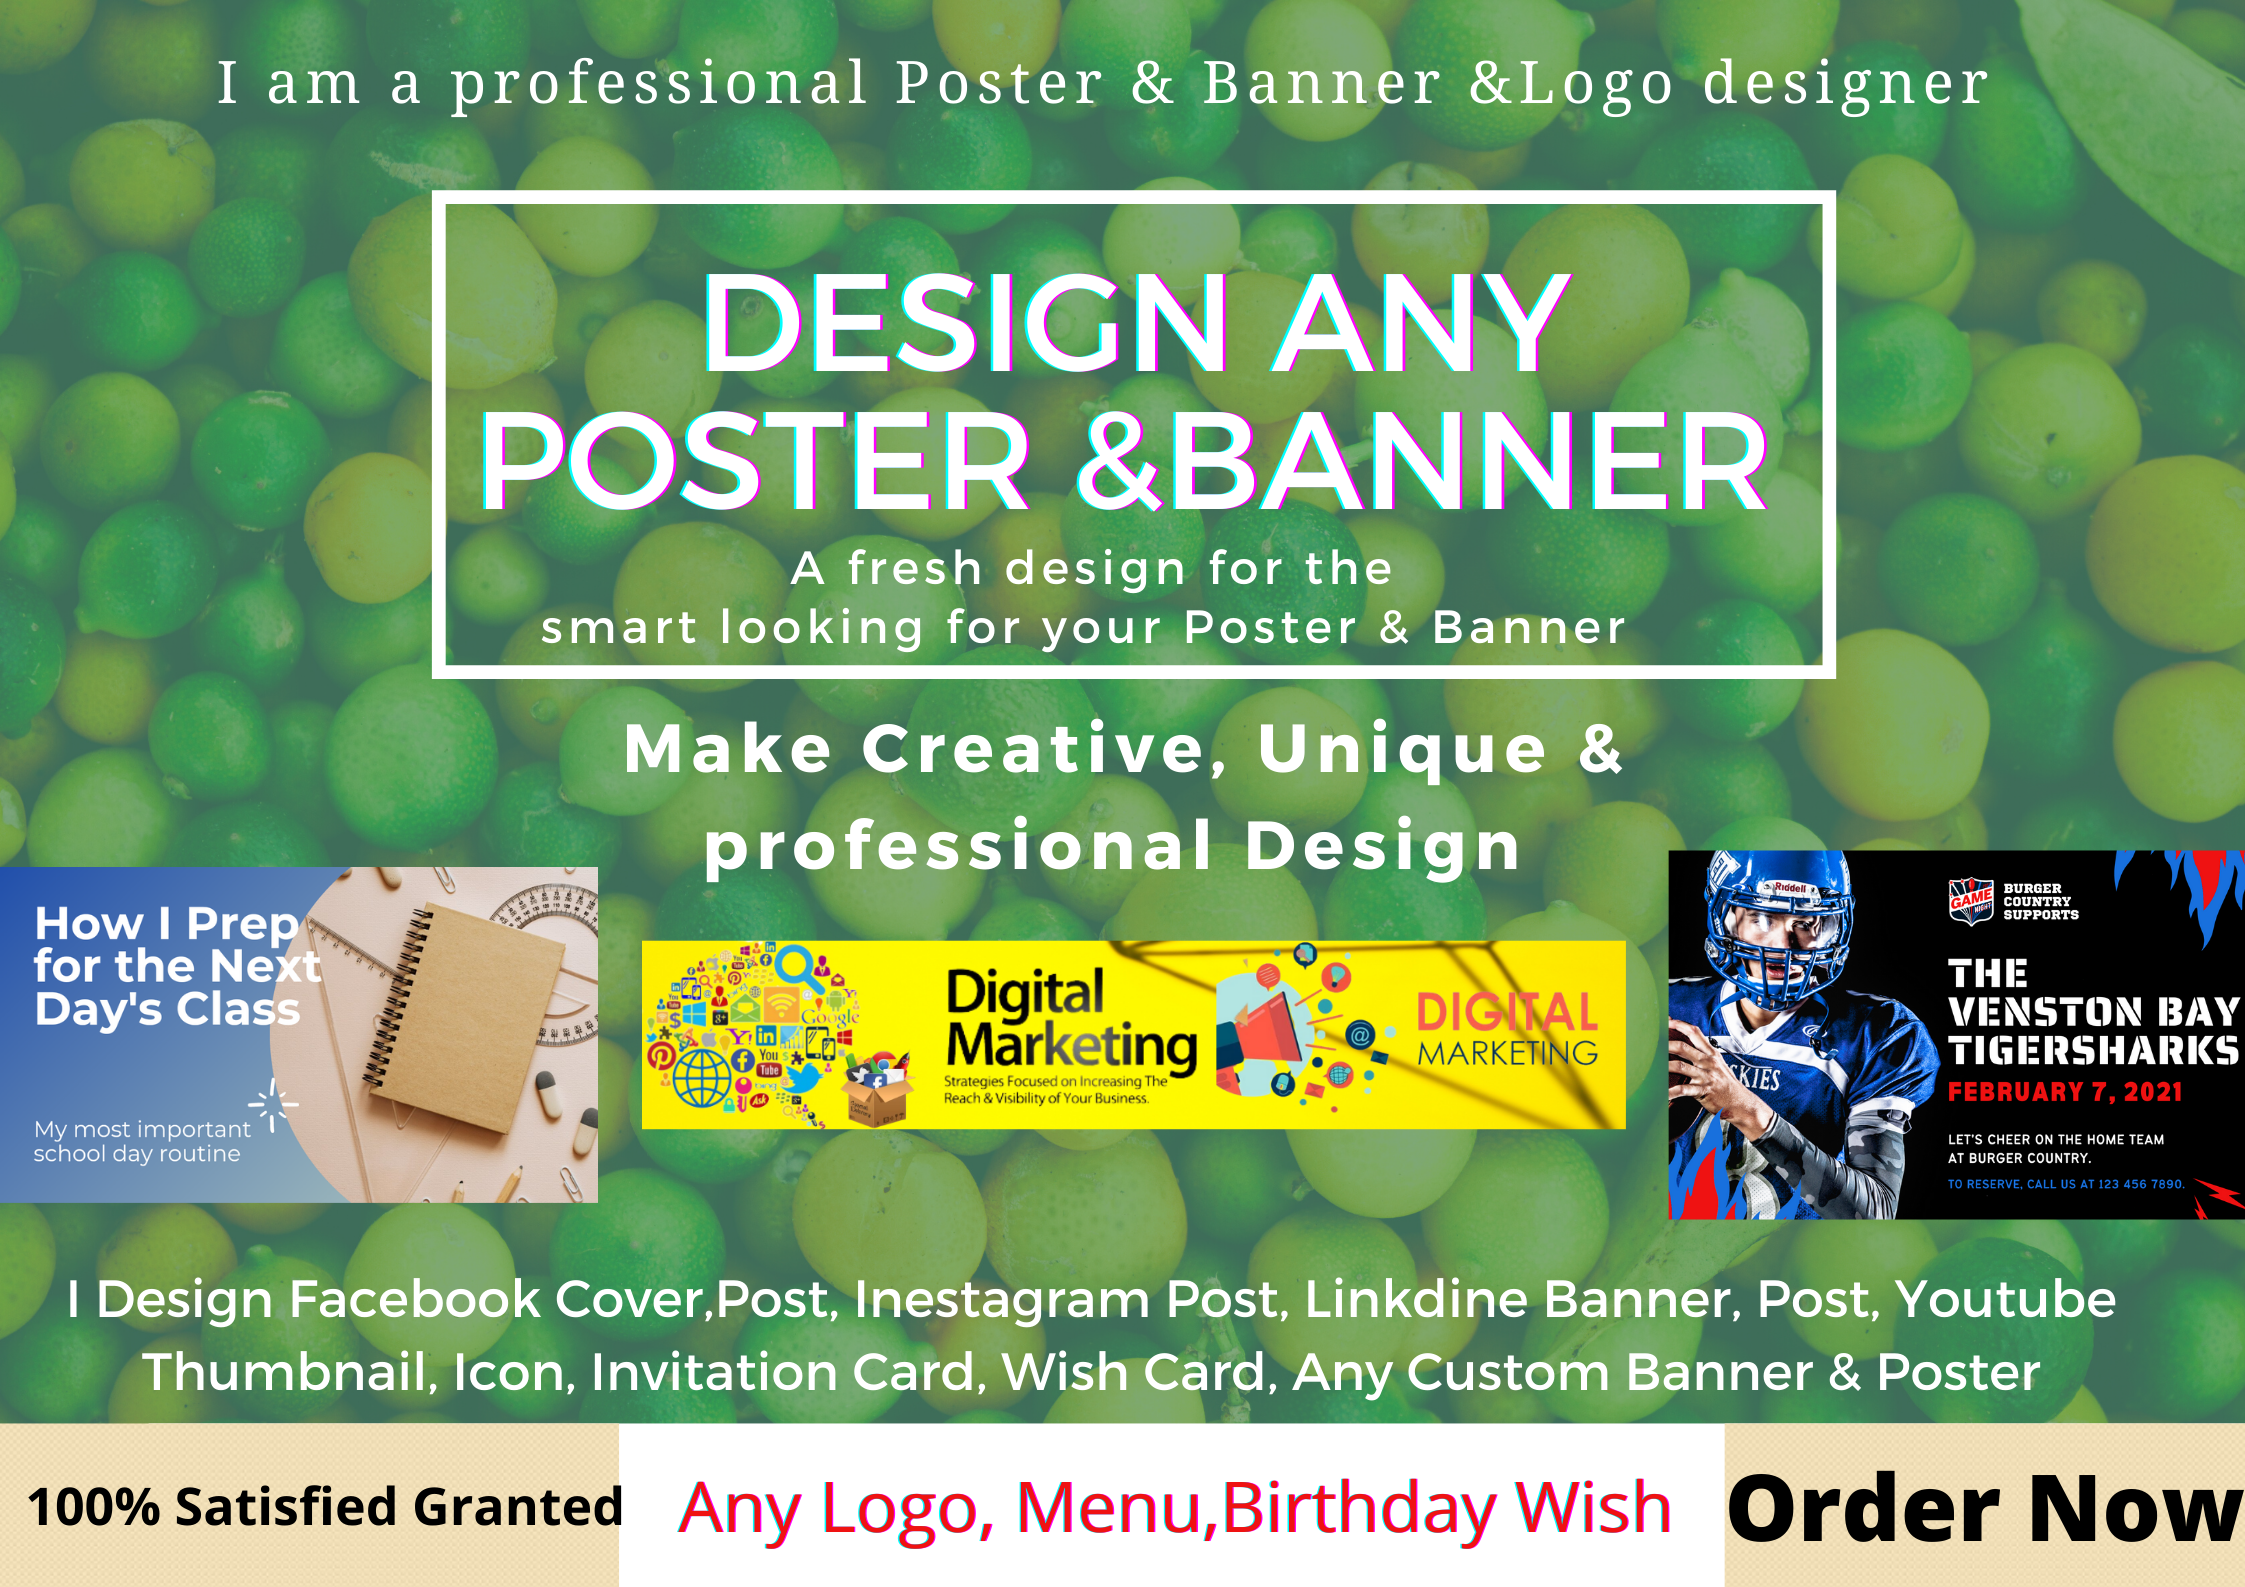 I, ll Design Unique & Professional Any Social Media Poster,  Cover,  And Banner & Any Logo